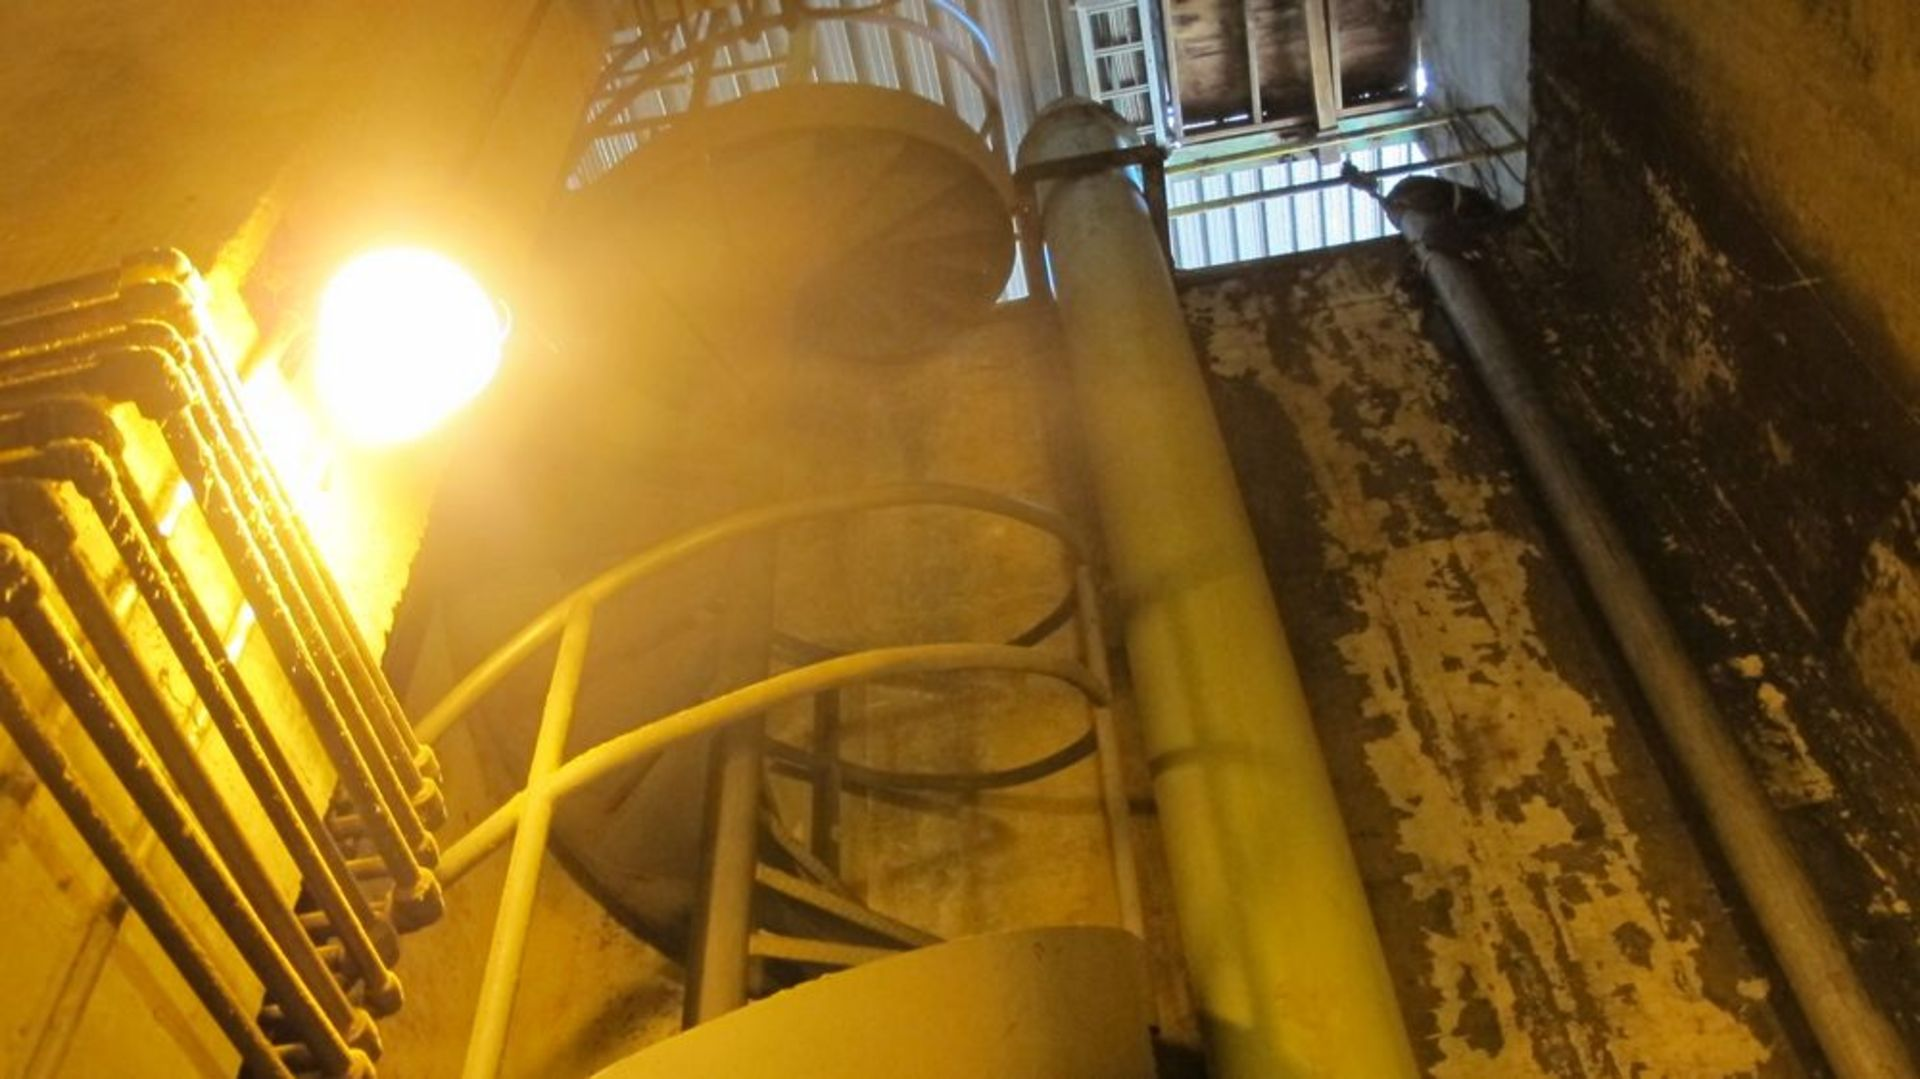 Lot 54 - SPIRAL STAIRCASE (38 STEPS IN TOTAL) (TRUCK DUMP BLDG - WOOD YARD)